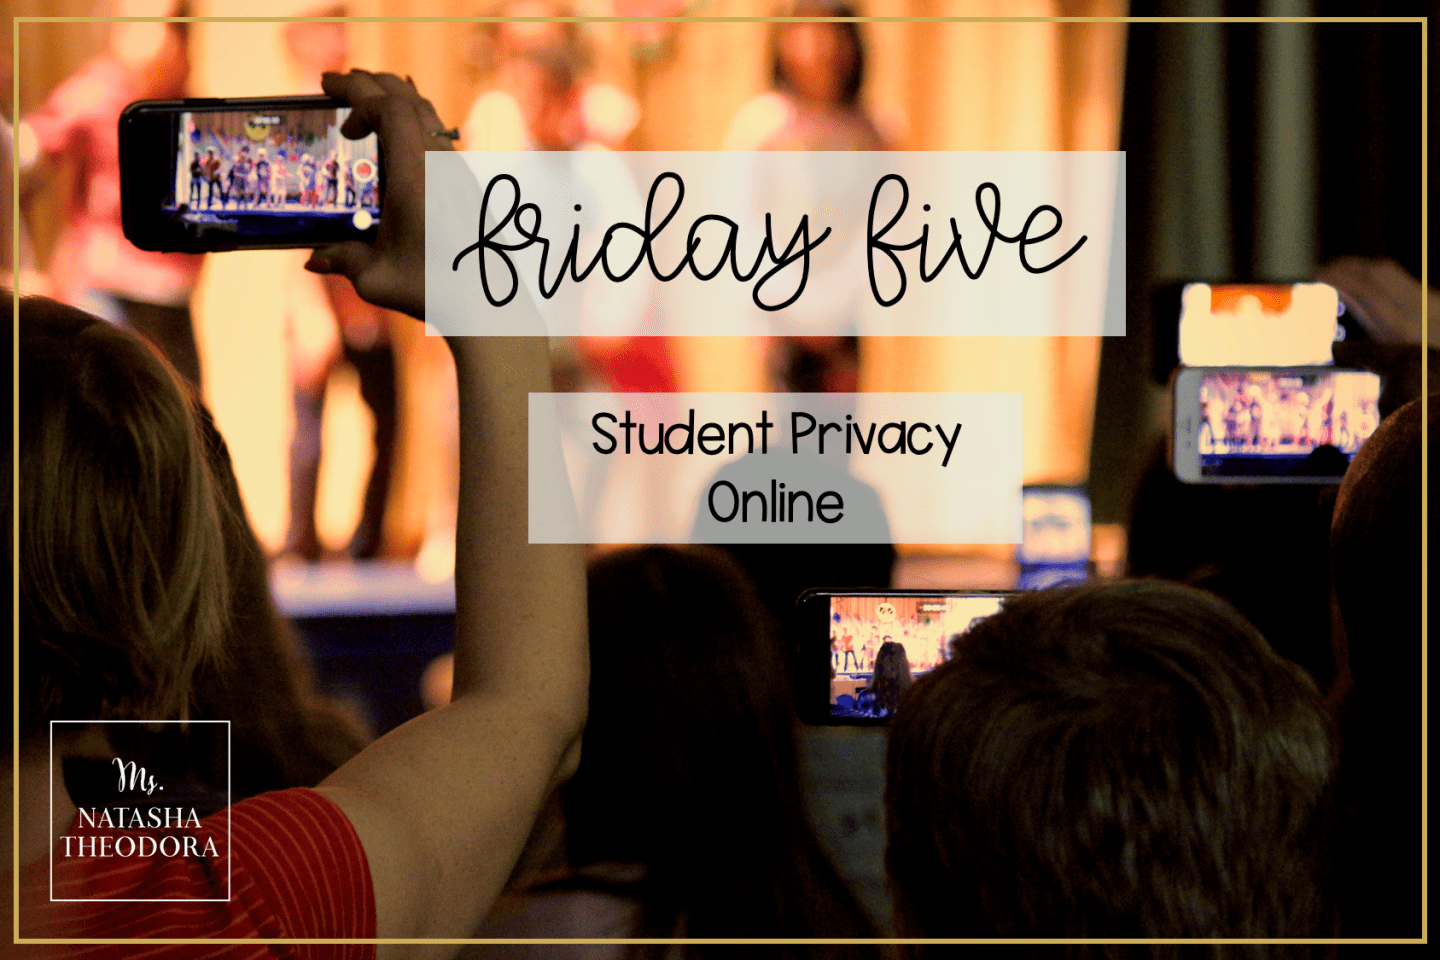 Friday Five: Student Privacy Online